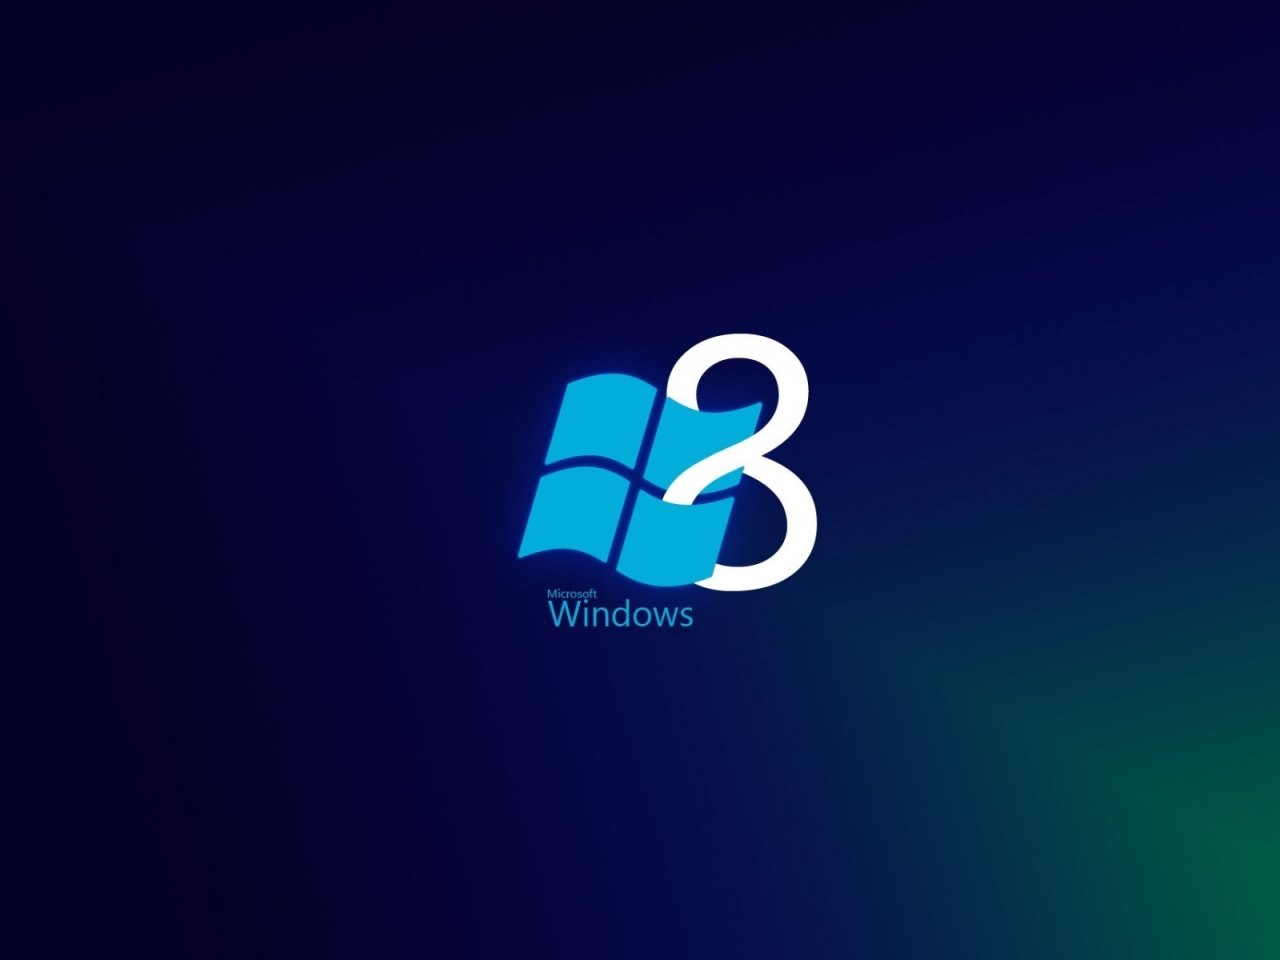 Windows 8 Blue Style for 1280 x 960 resolution